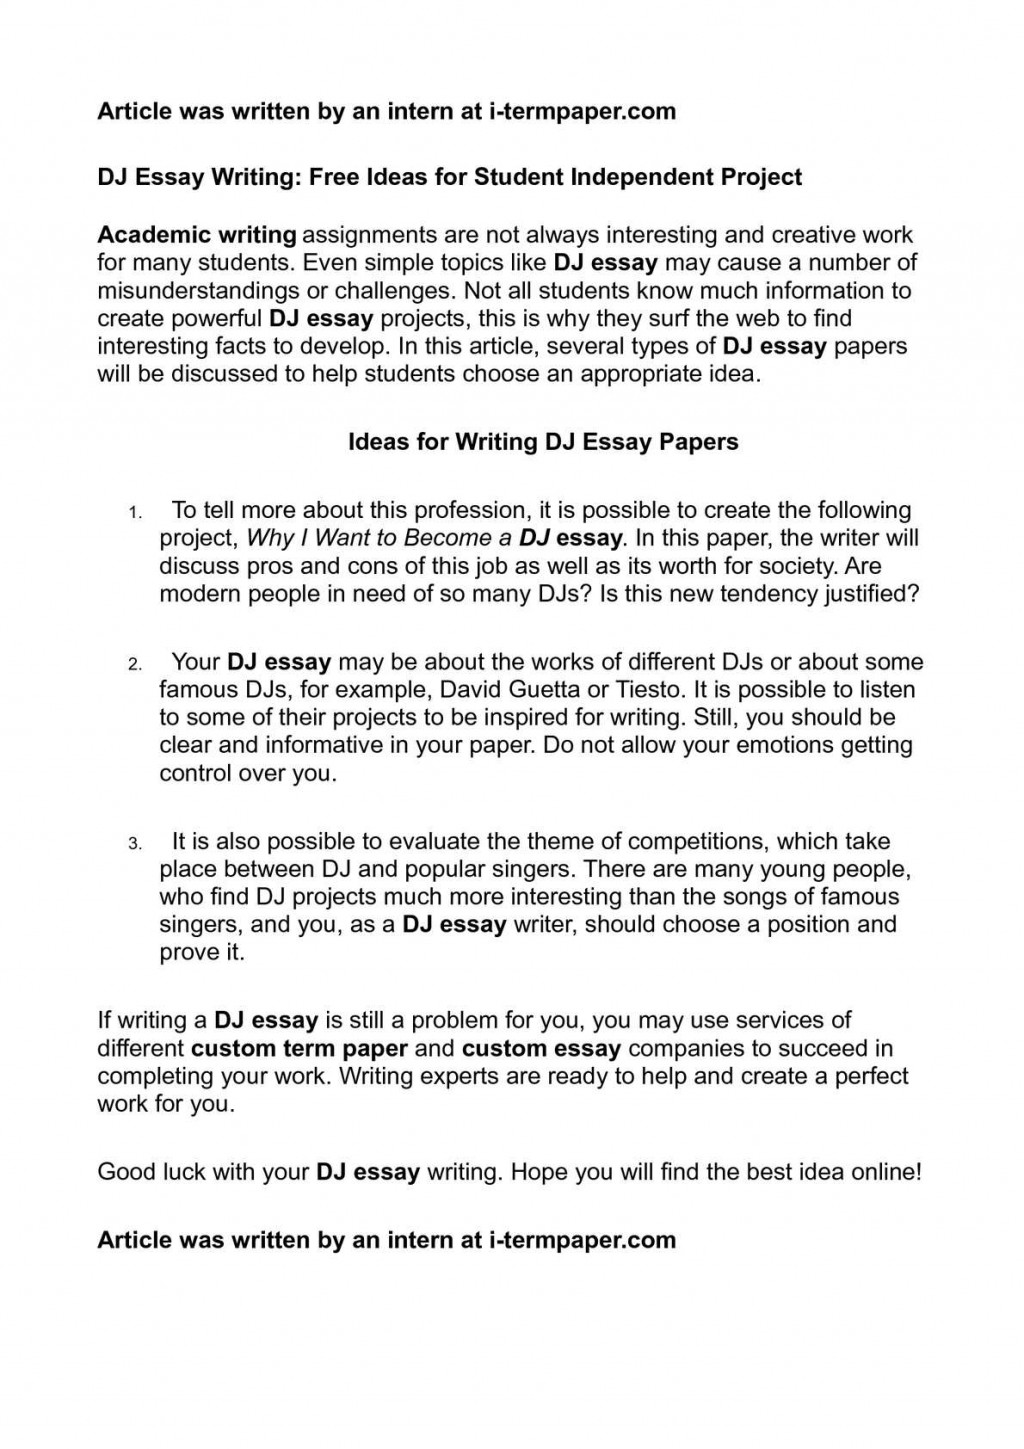 003 Essay Writer Free P1 Amazing Trial Unblocked Software Large